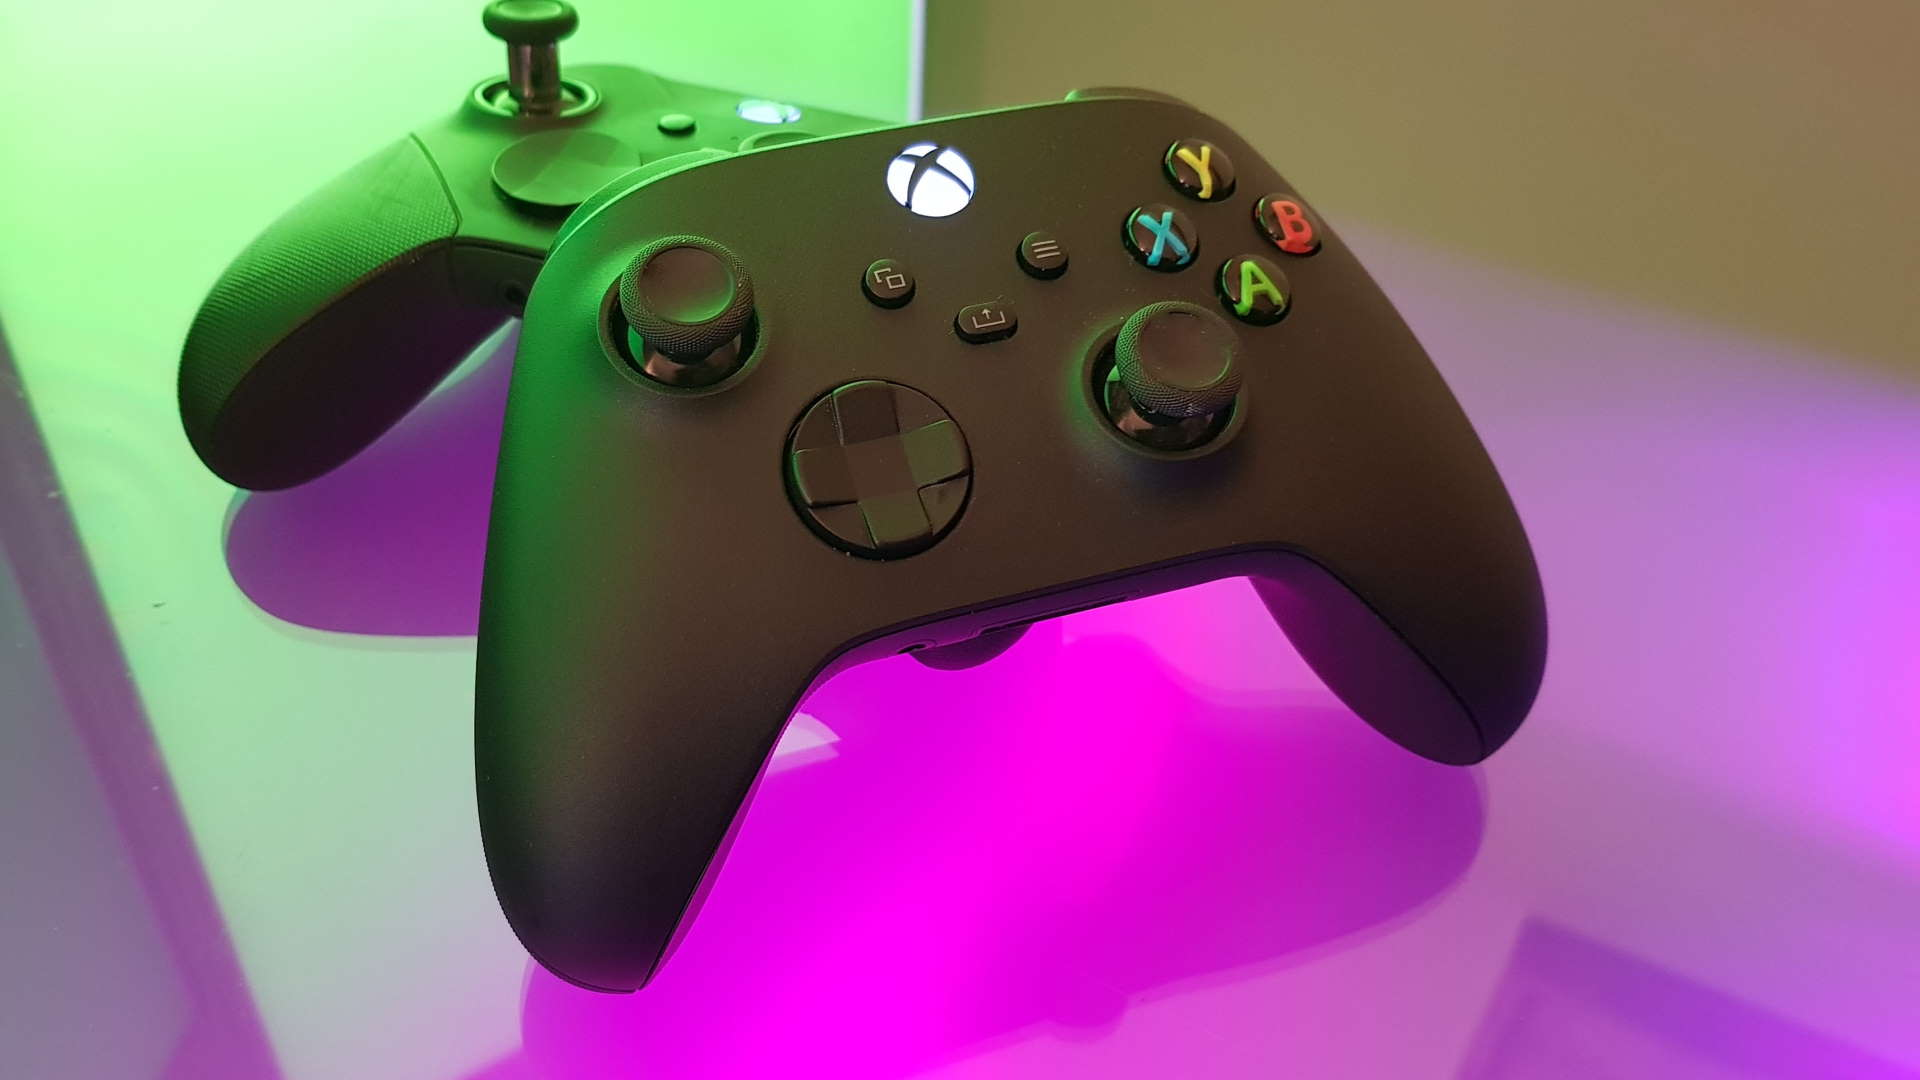 The Xbox Series X controller is superior to the Elite Series 2 in one crucial way